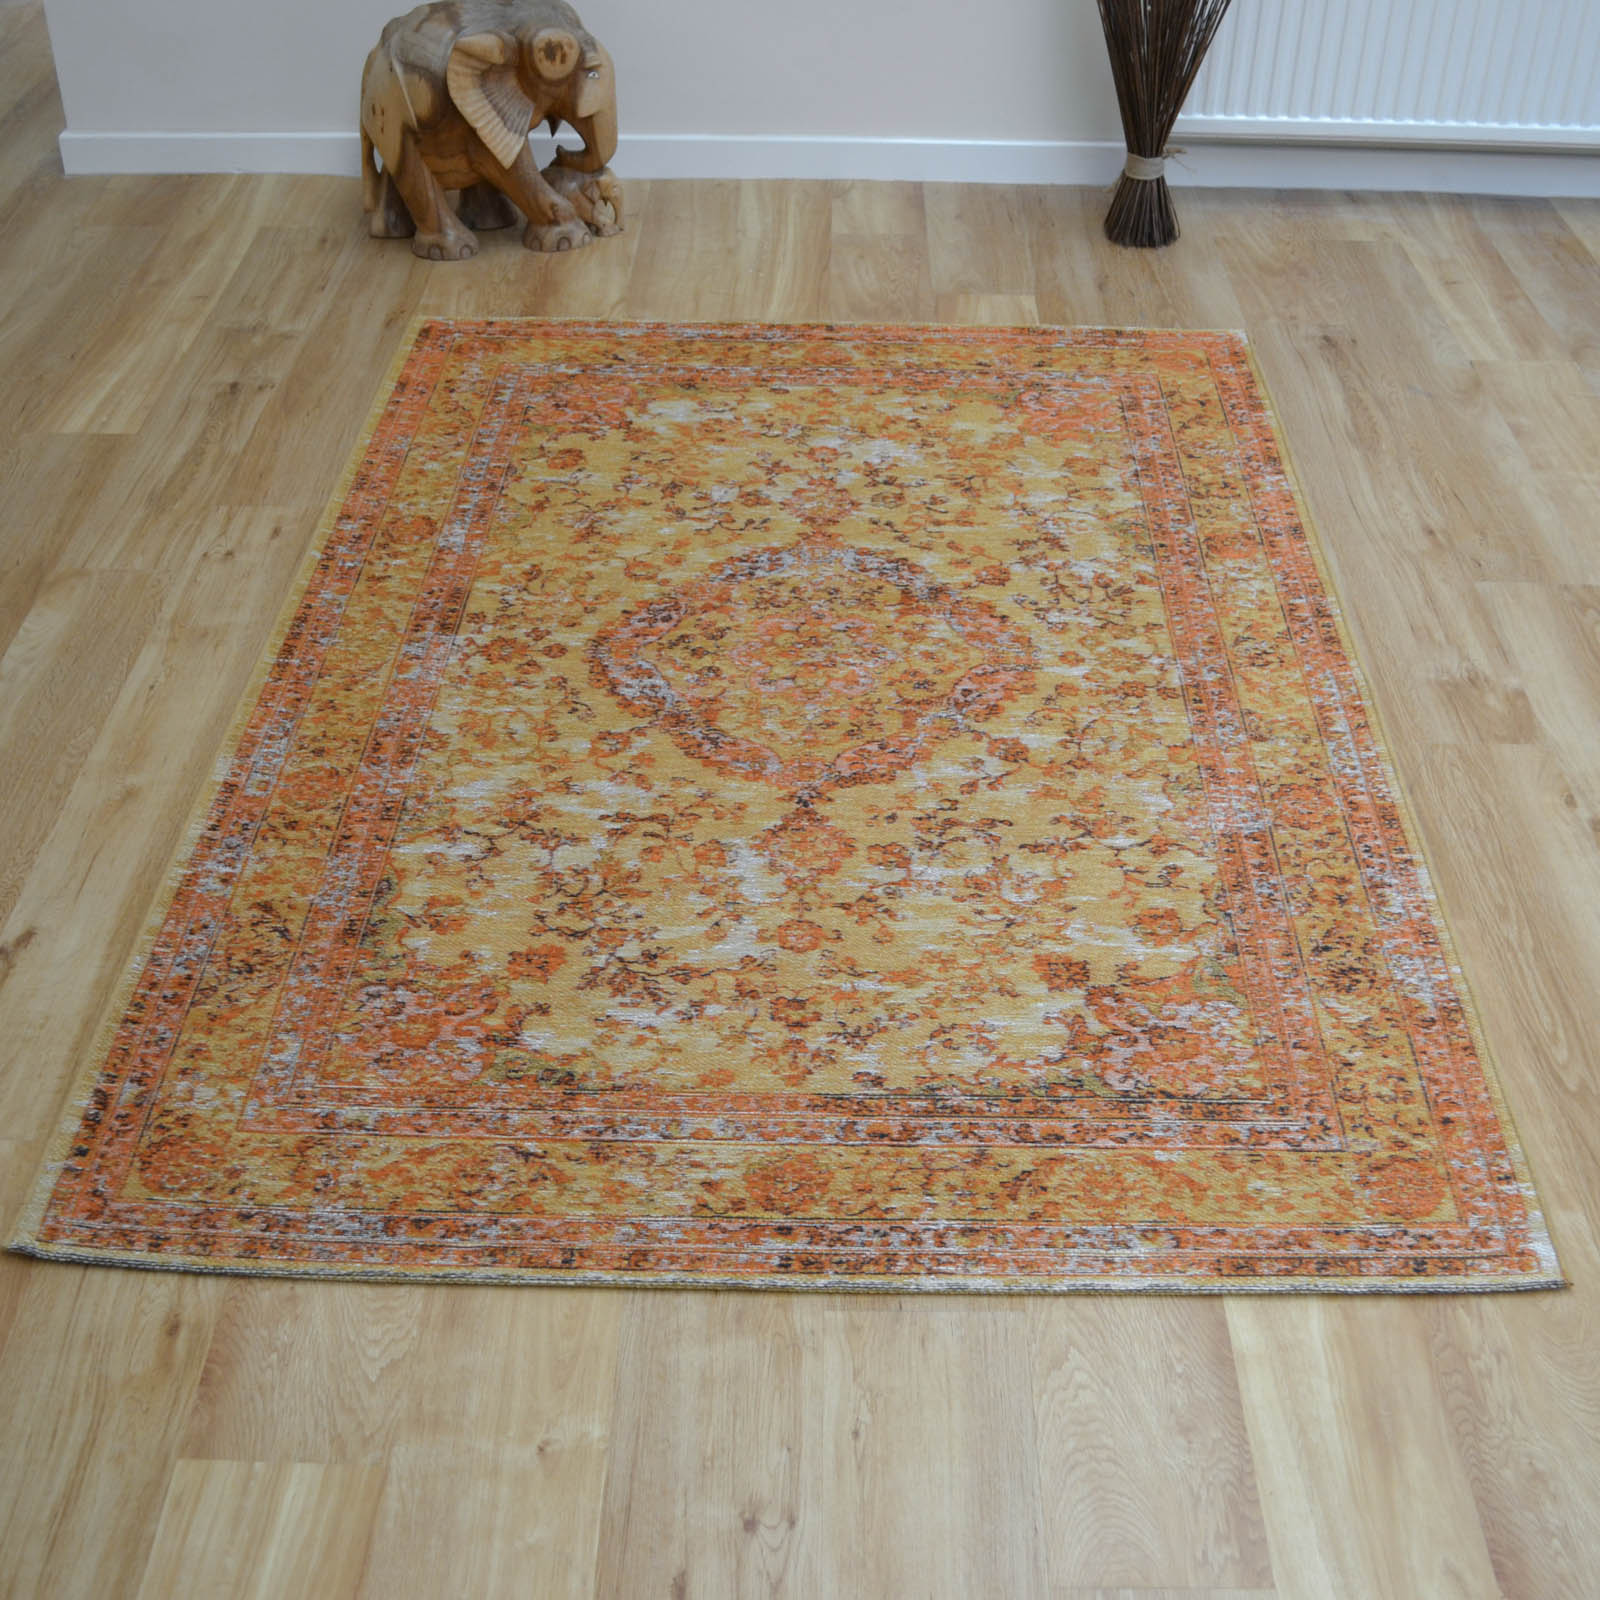 Capri Rugs 91269 8005 in Orange